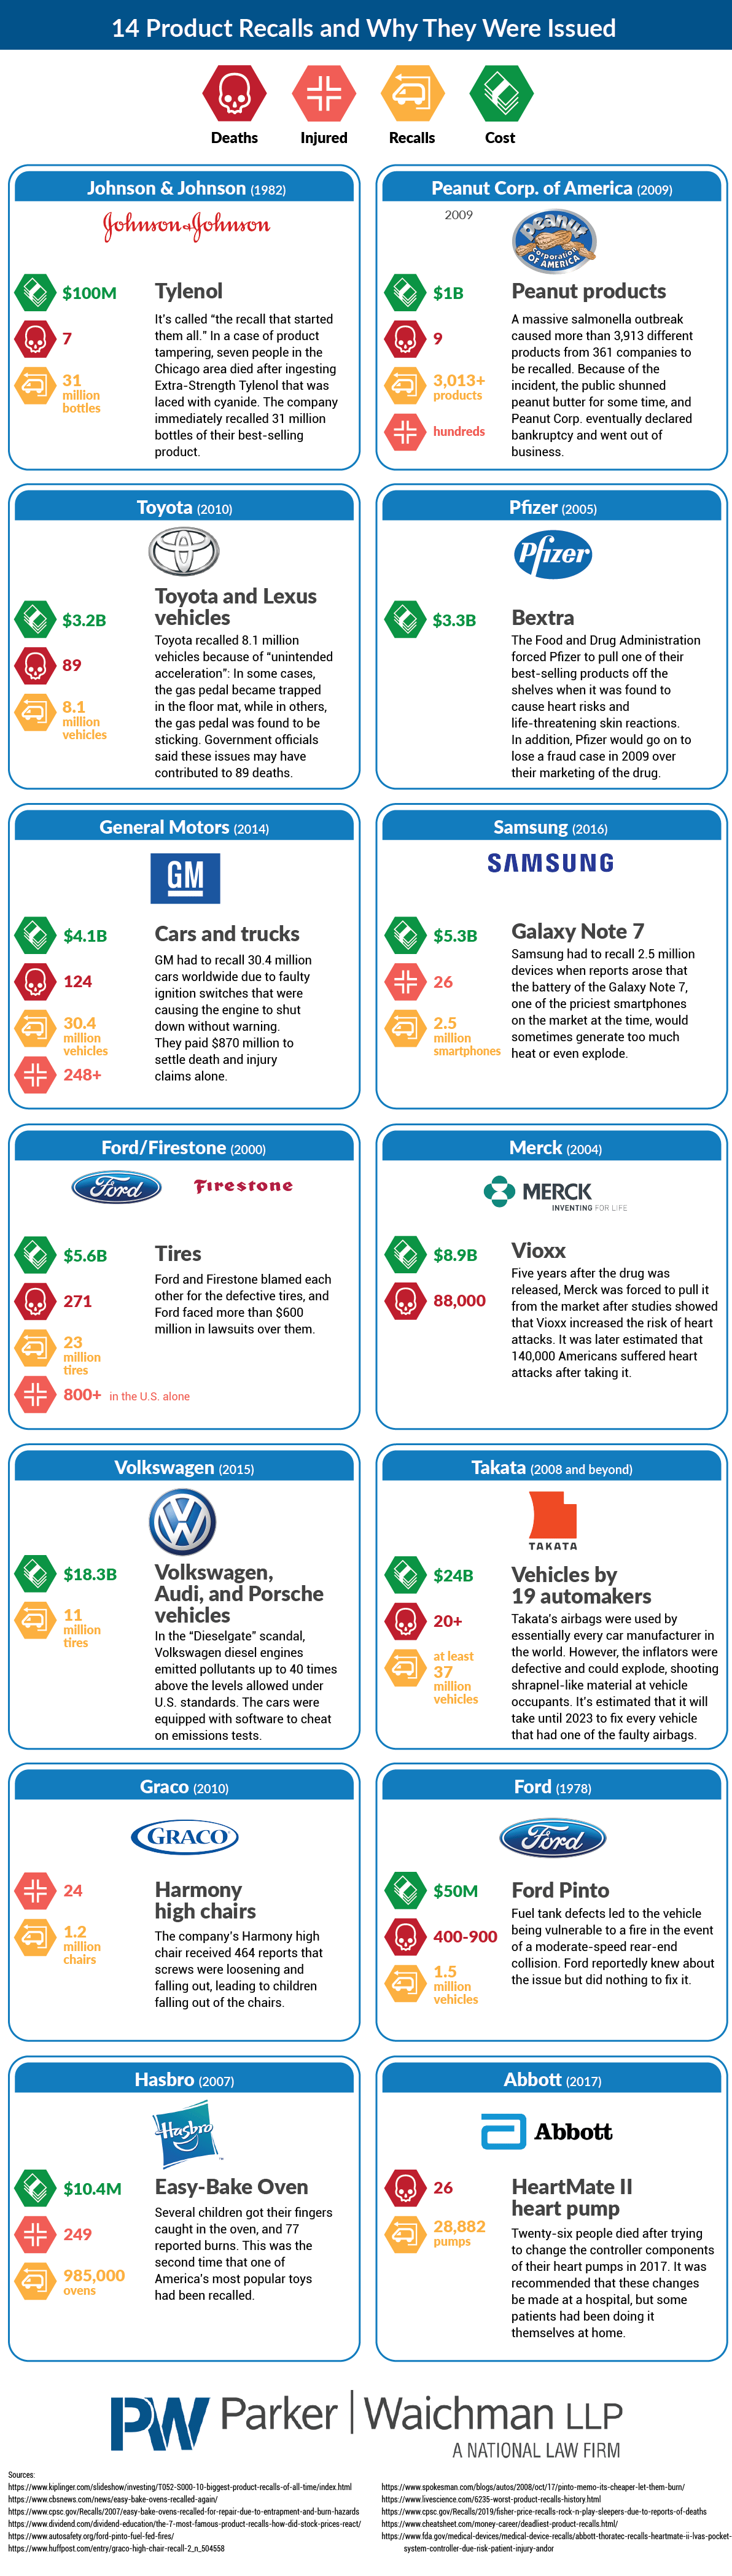 The Most Critical Product Recalls And Why They Were Issued